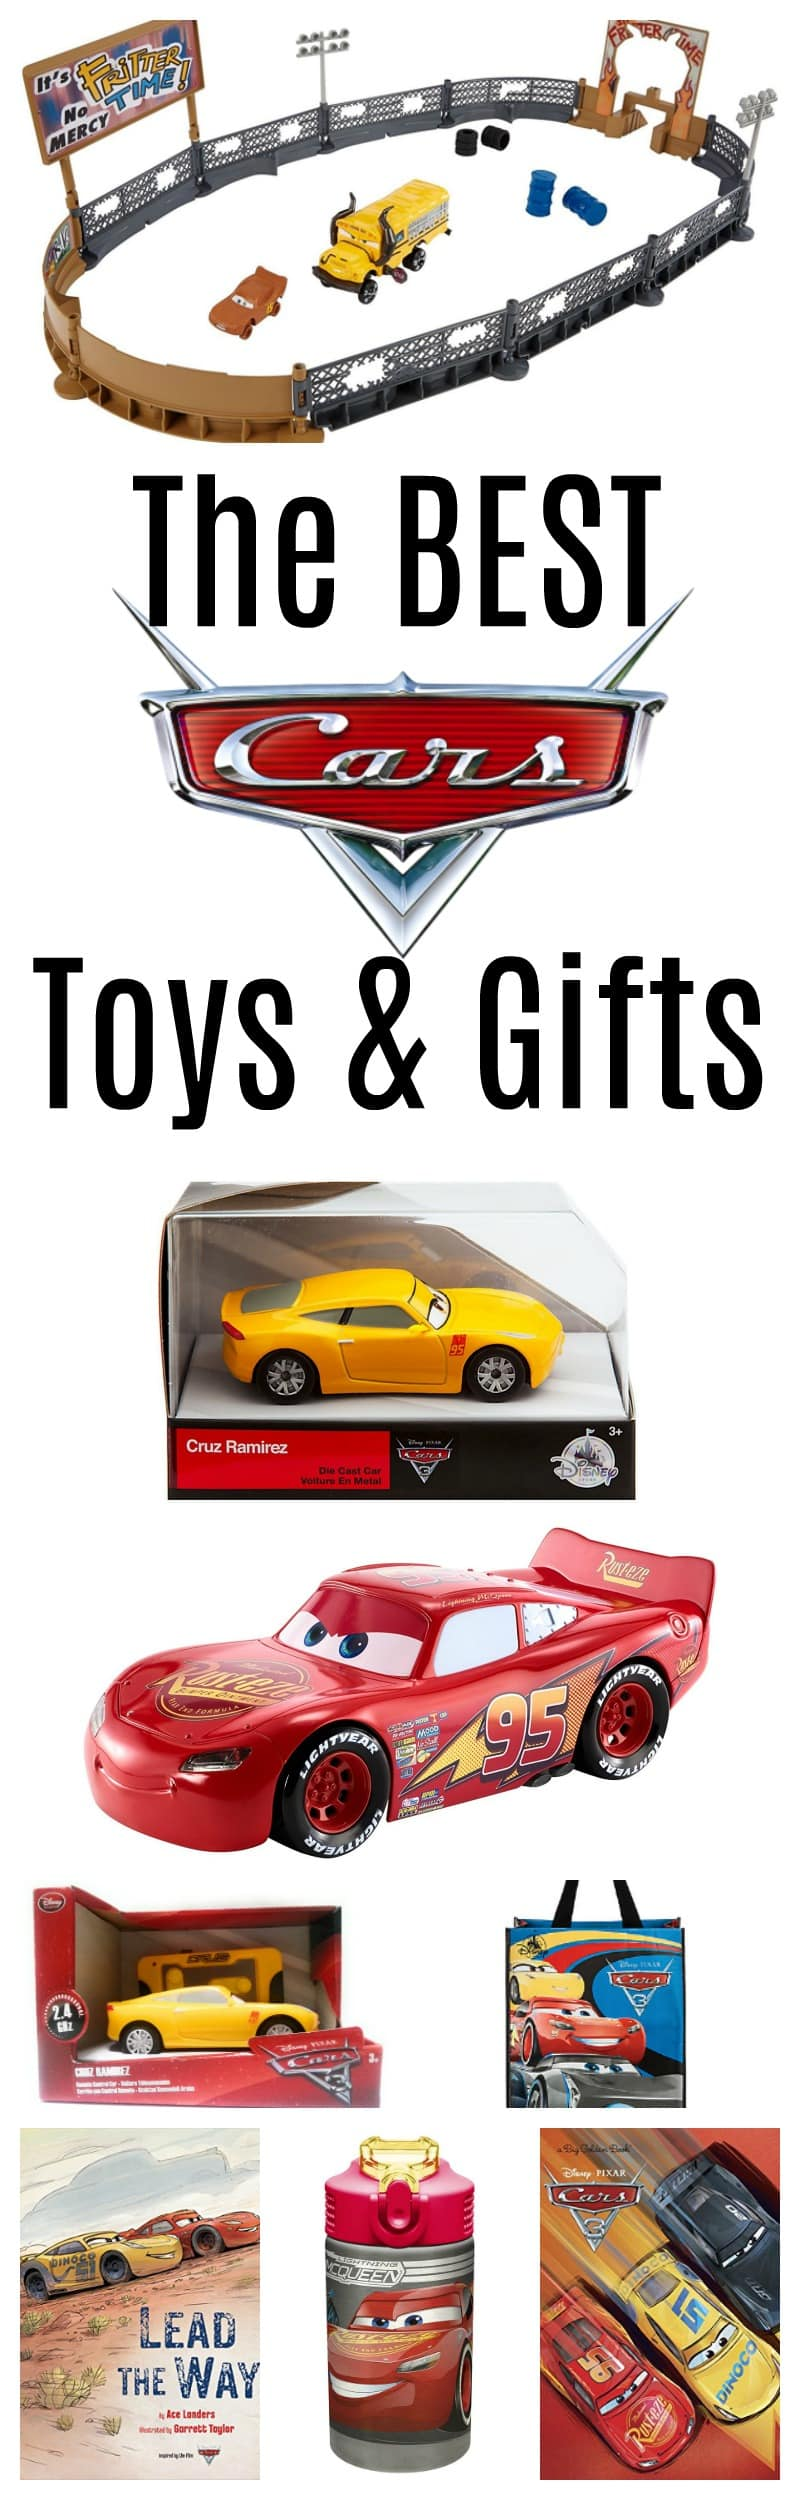 Do you want the BEST Cars 3 Toys? Check out this list of new Cars 3 Toys and Gifts!